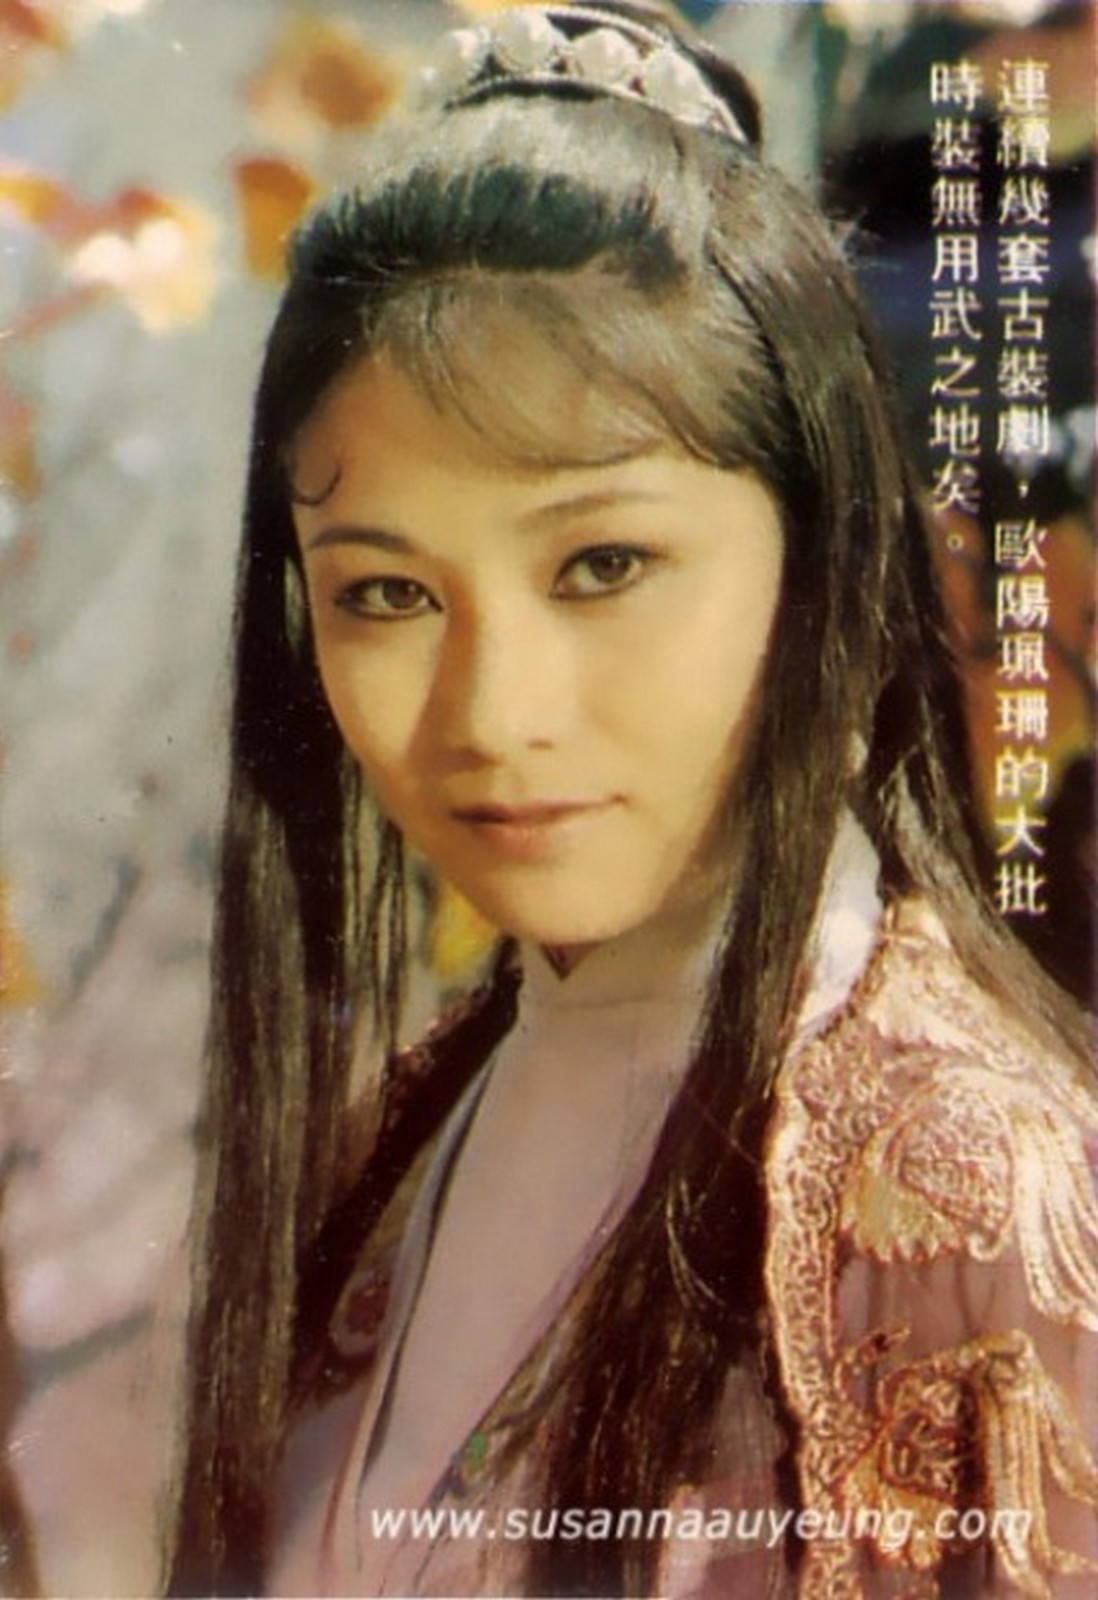 Hong Kong actress Susanna Au Yeung is best known for her role as Huang Rong  in The Return of the Condor Heroes (1983).